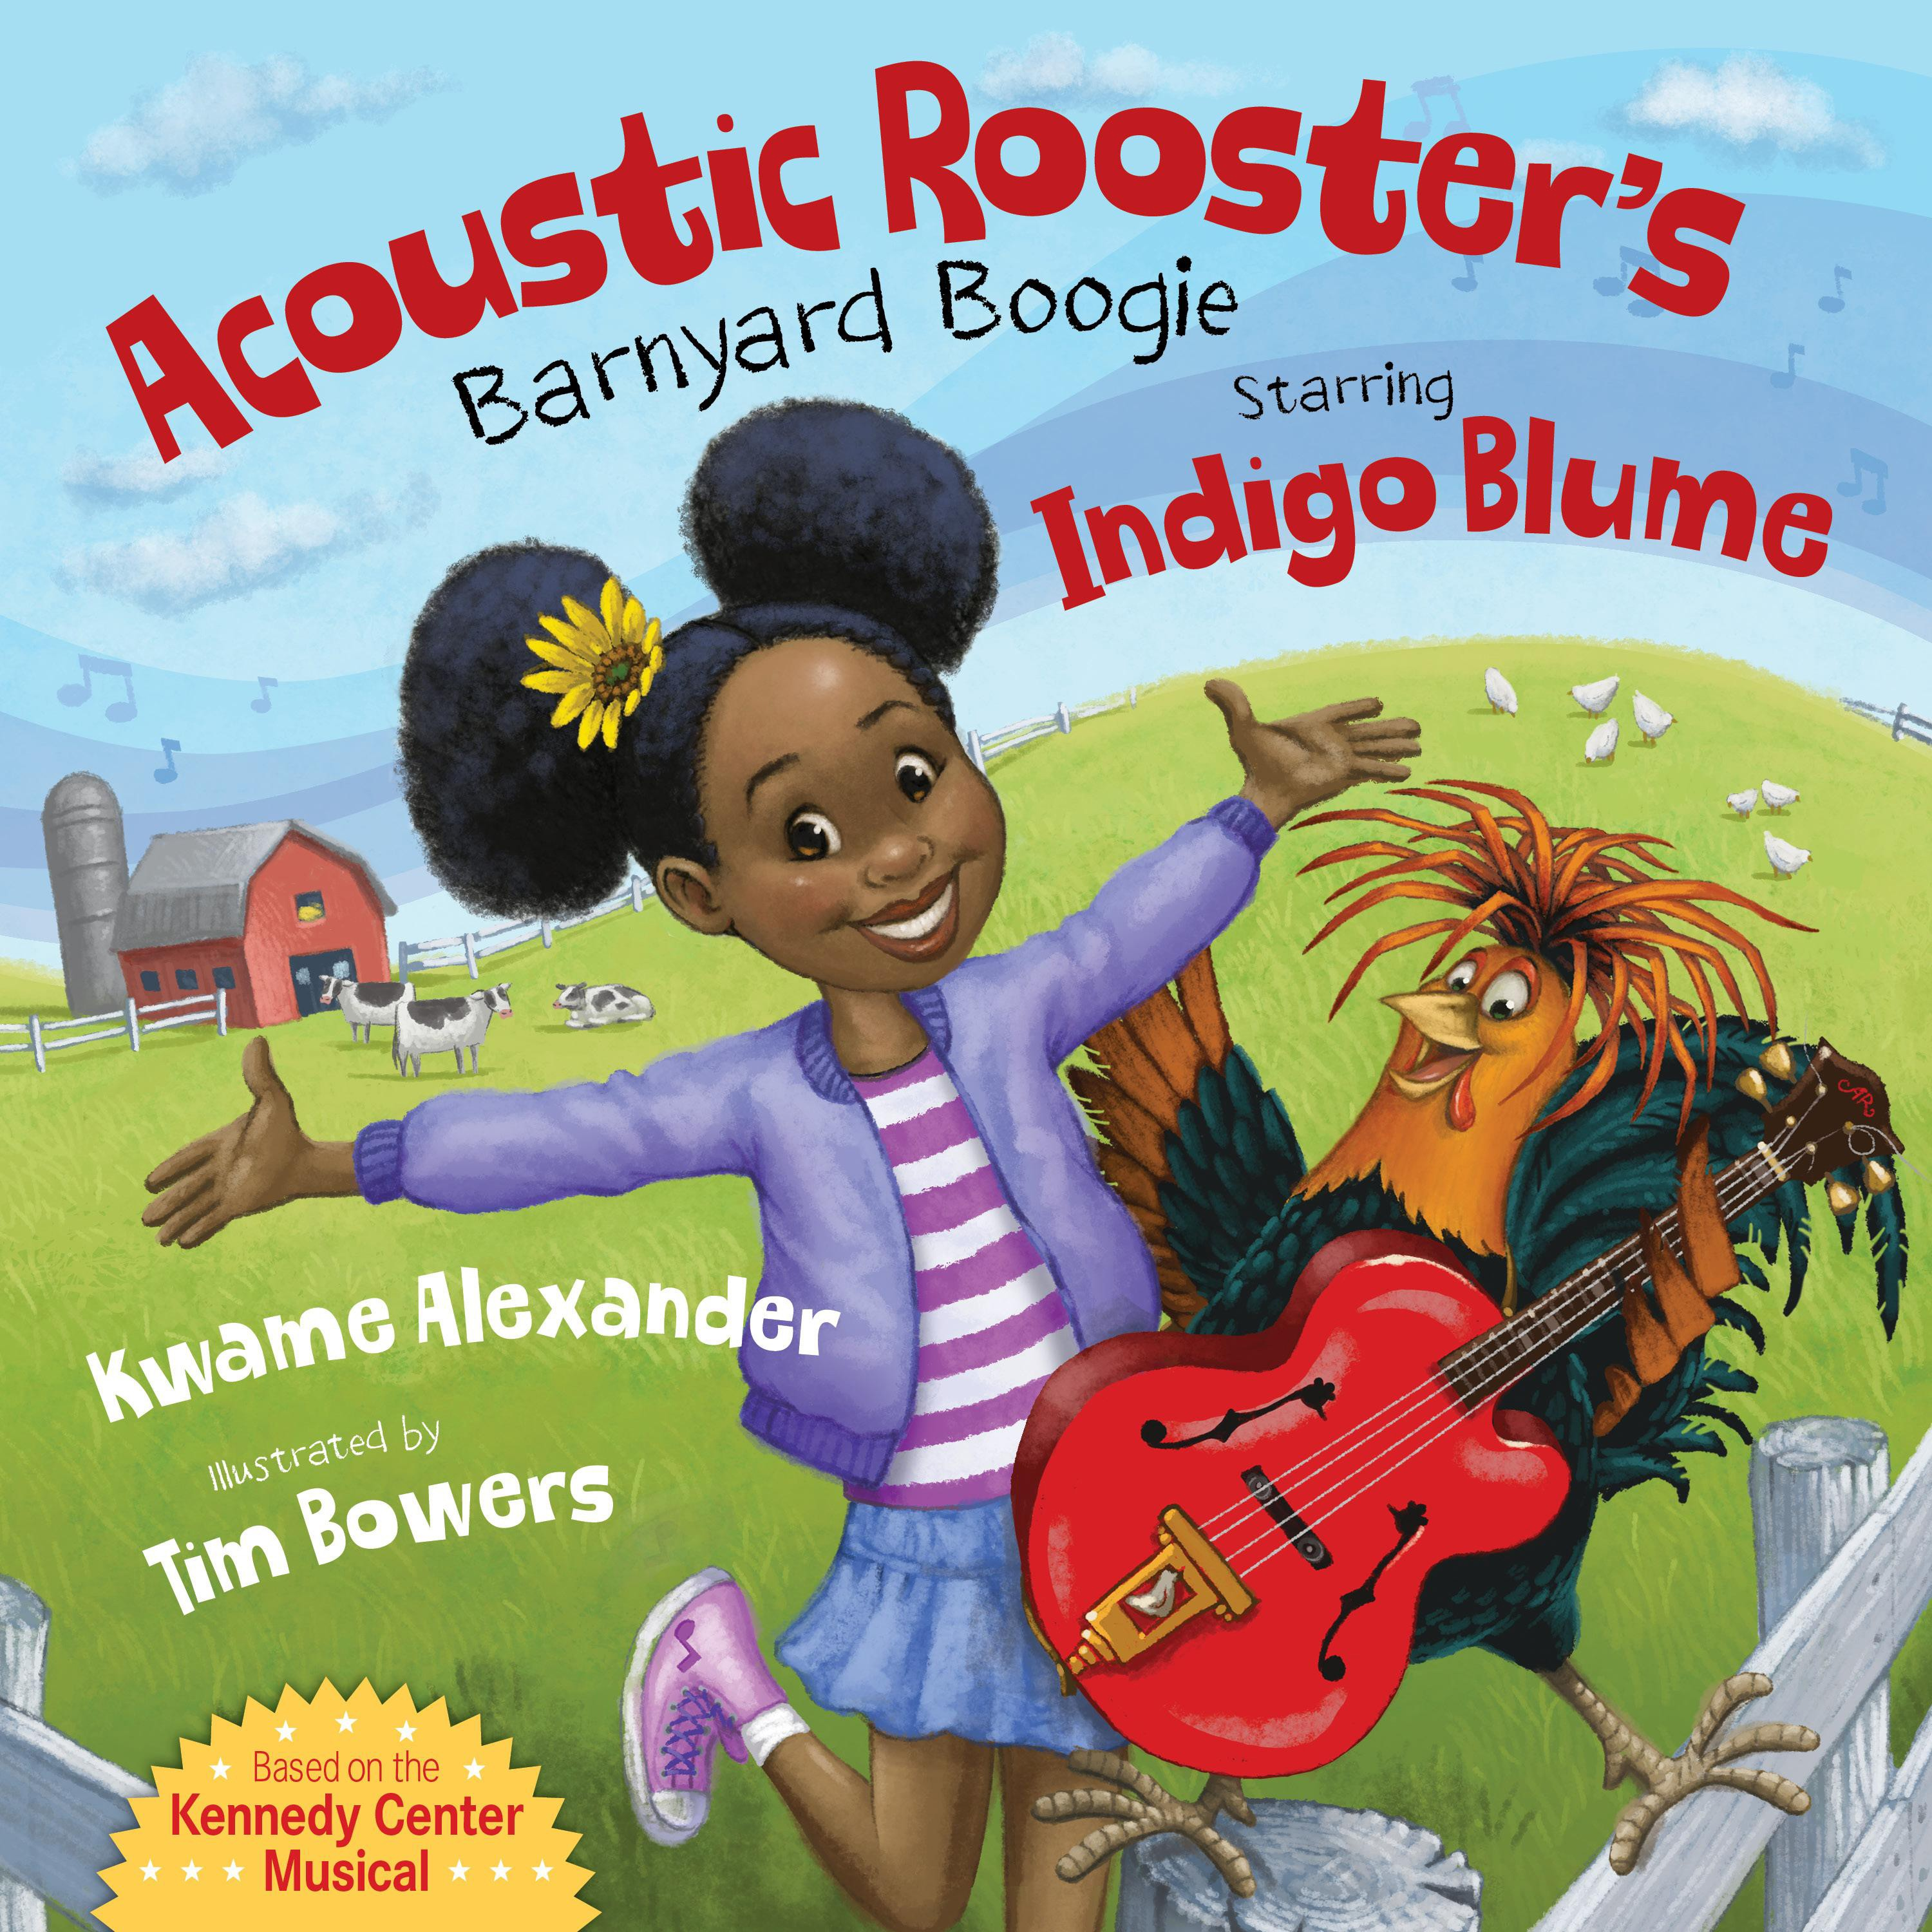 NDG Book Review: 'Acoustic Rooster's Barnyard Boogie Starring Indigo Blume'